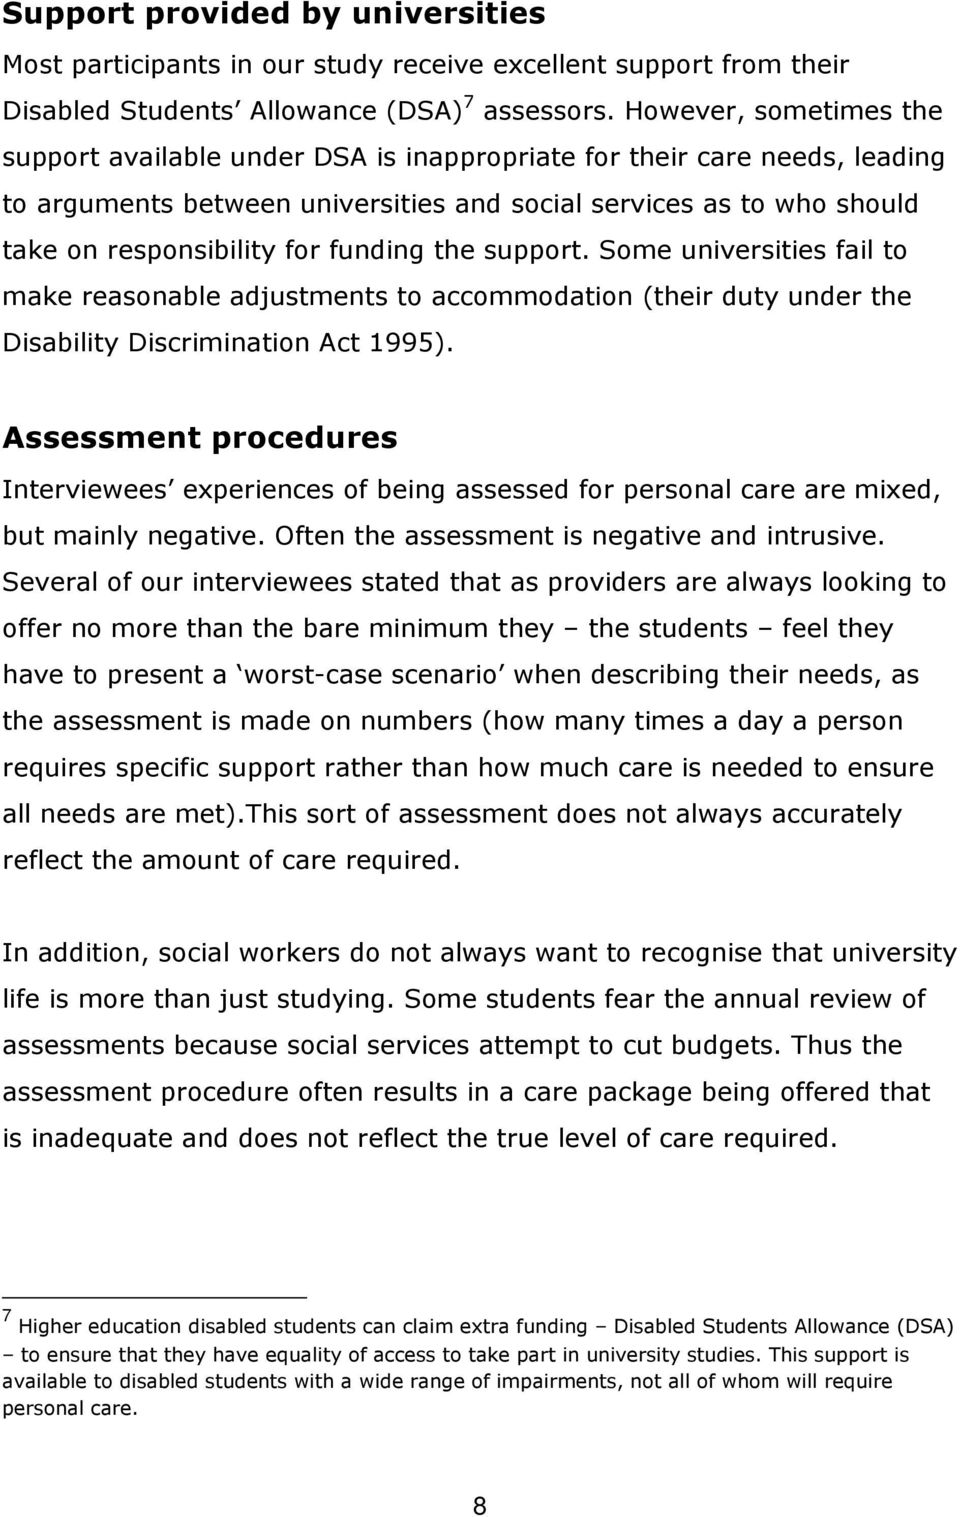 funding the support. Some universities fail to make reasonable adjustments to accommodation (their duty under the Disability Discrimination Act 1995).